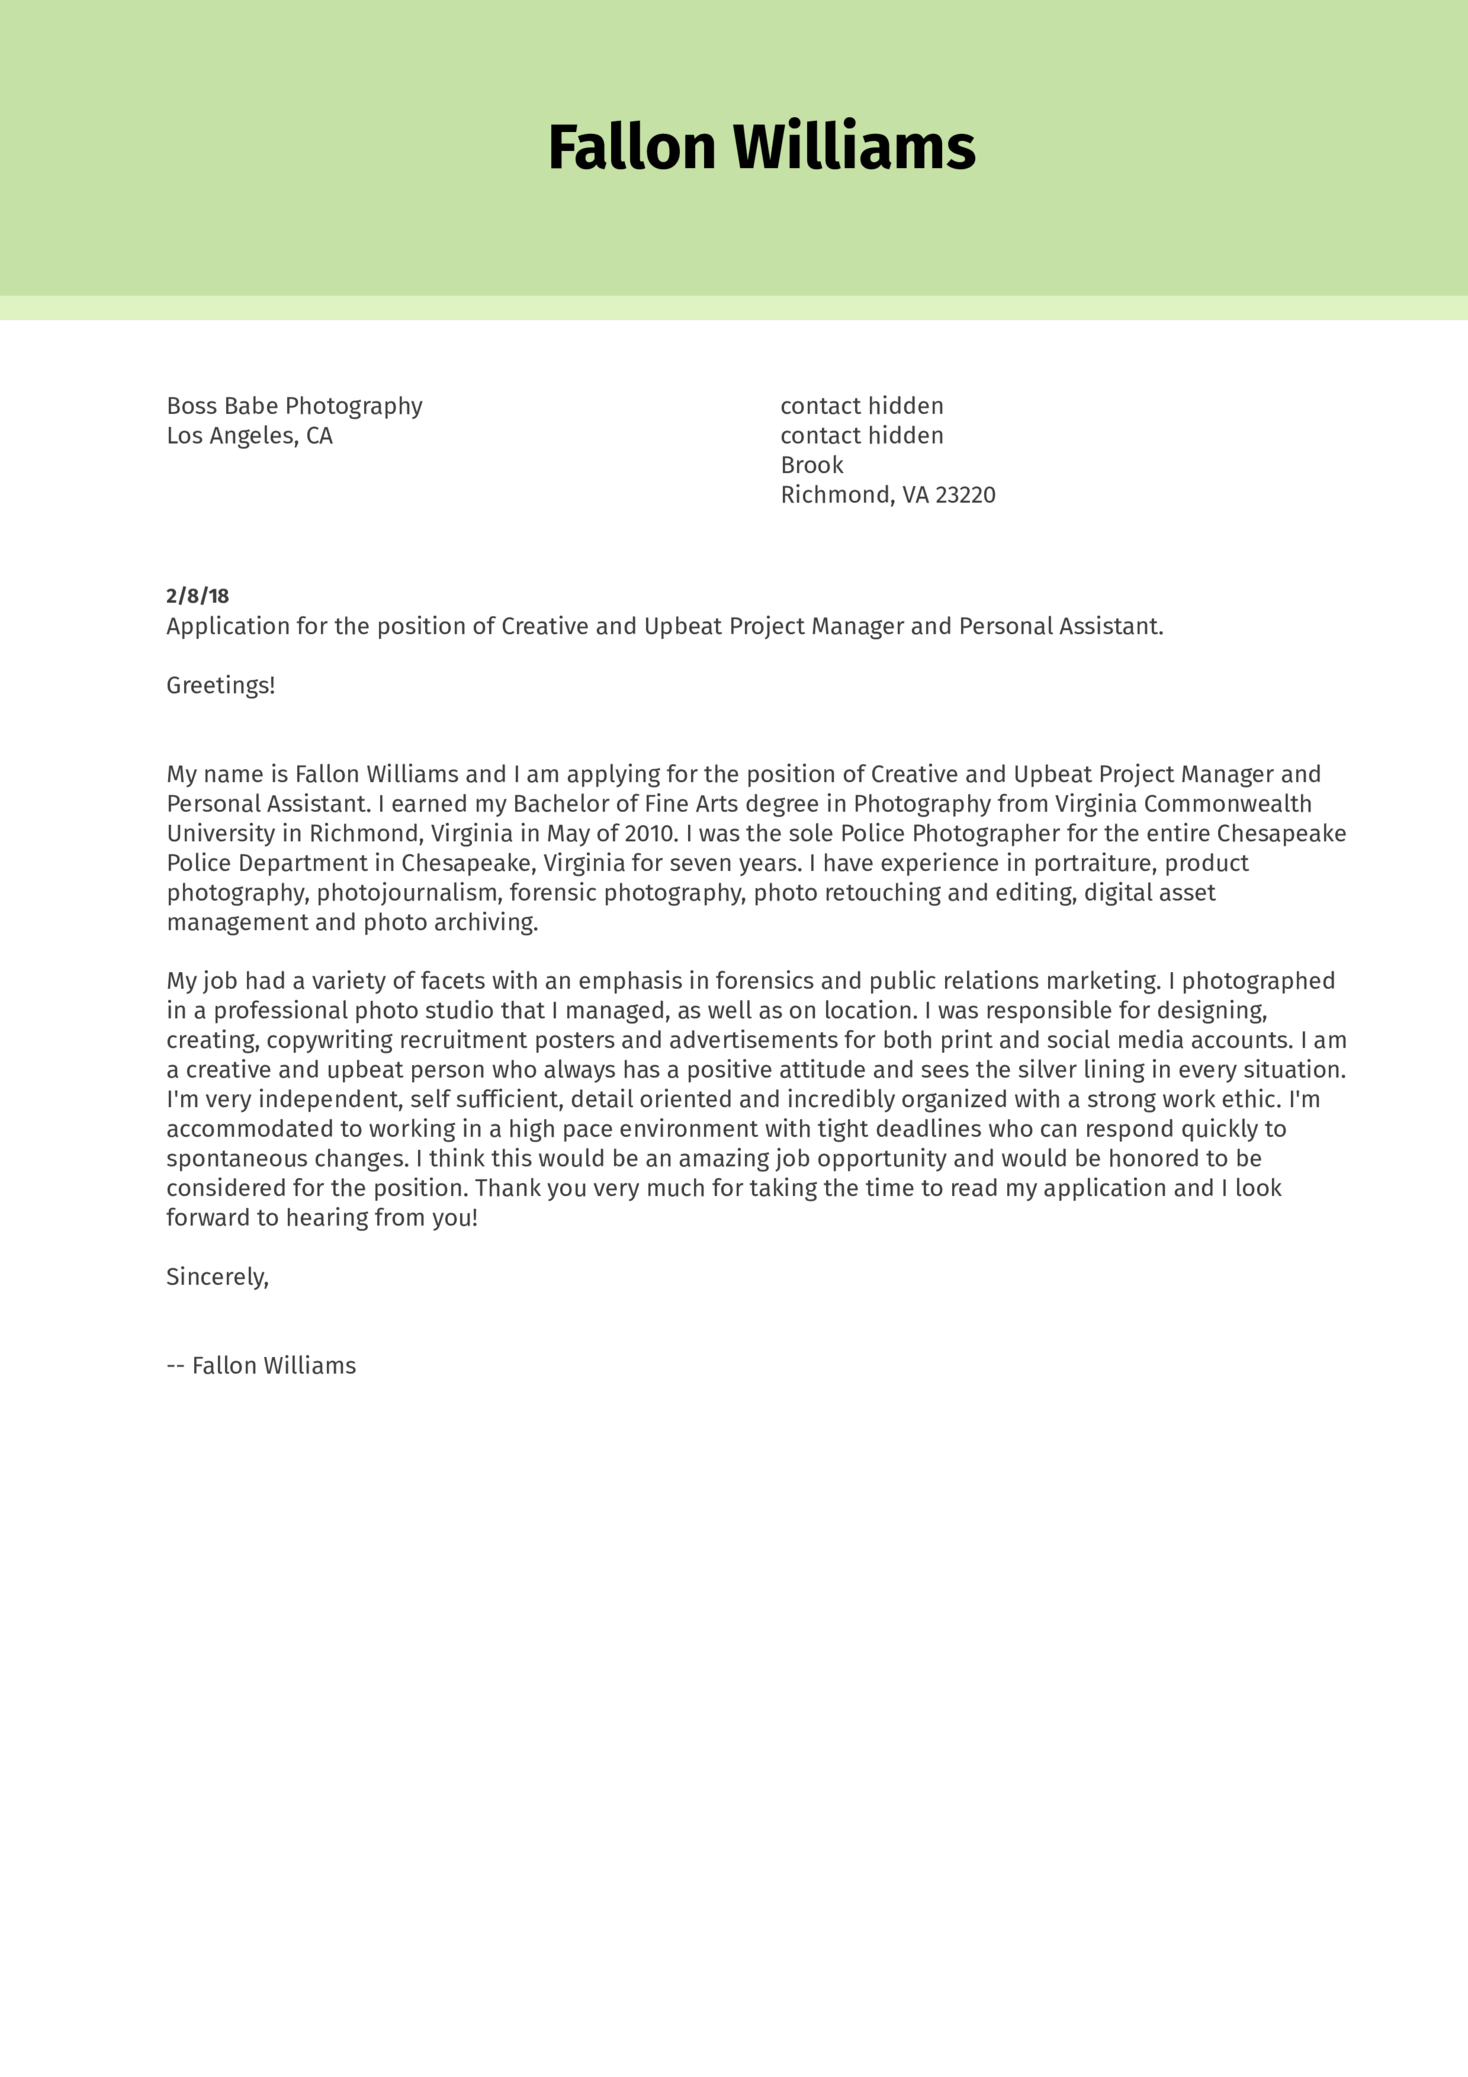 Cover Letter Examples by Real People: Personal creative ...